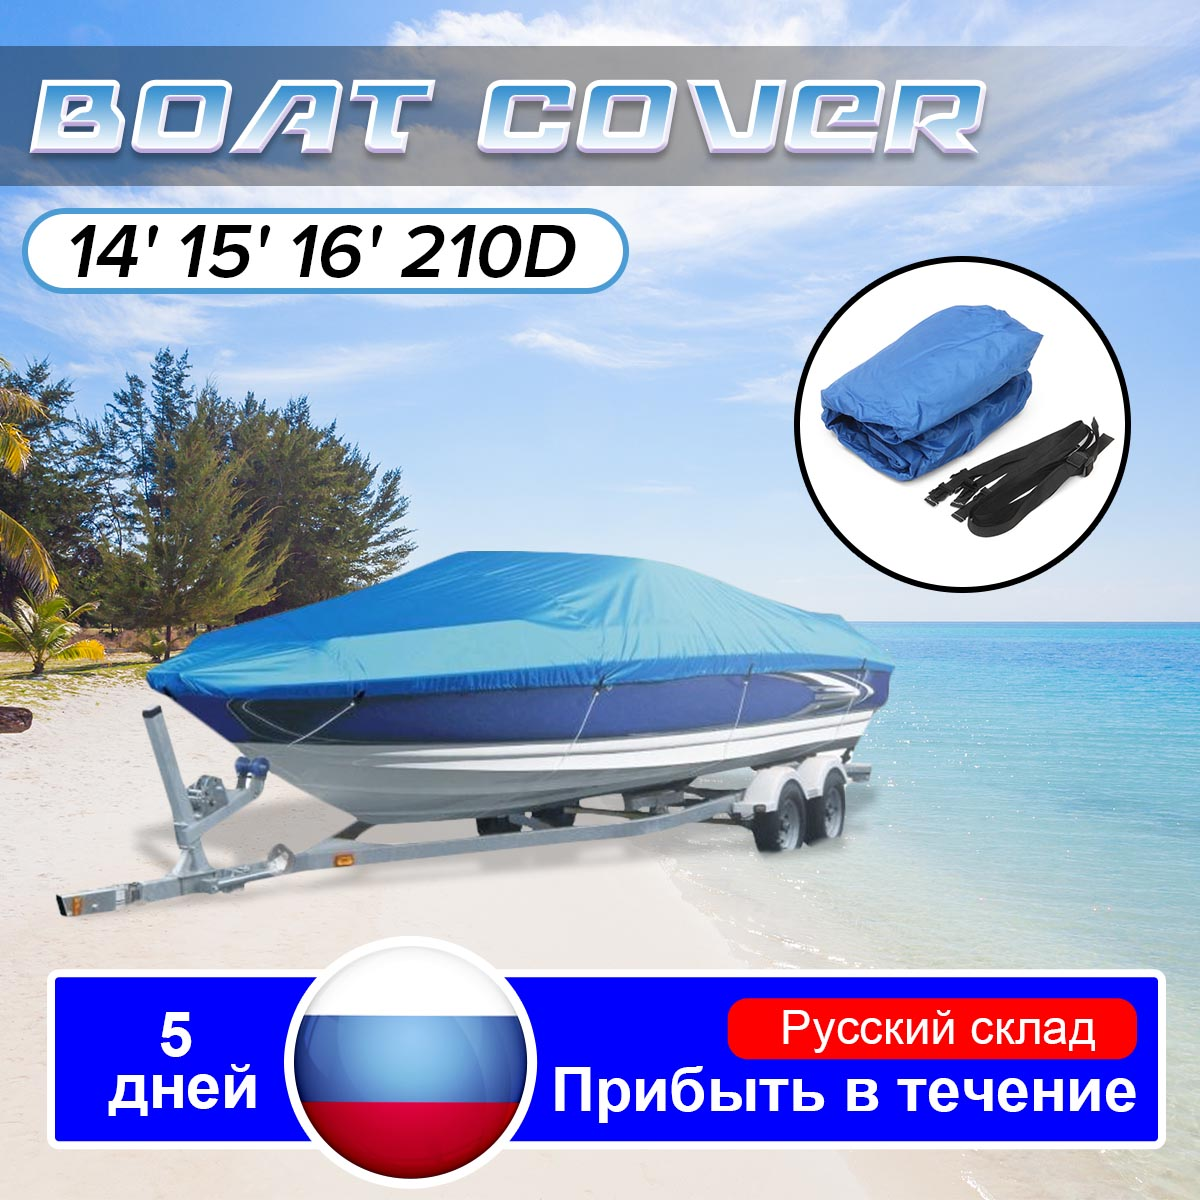 Heavy Duty 14-16ft Beam 90inch Trailerable 210D Marine Grade Boat Cover Waterproof UV Protected BlueHeavy Duty 14-16ft Beam 90inch Trailerable 210D Marine Grade Boat Cover Waterproof UV Protected Blue